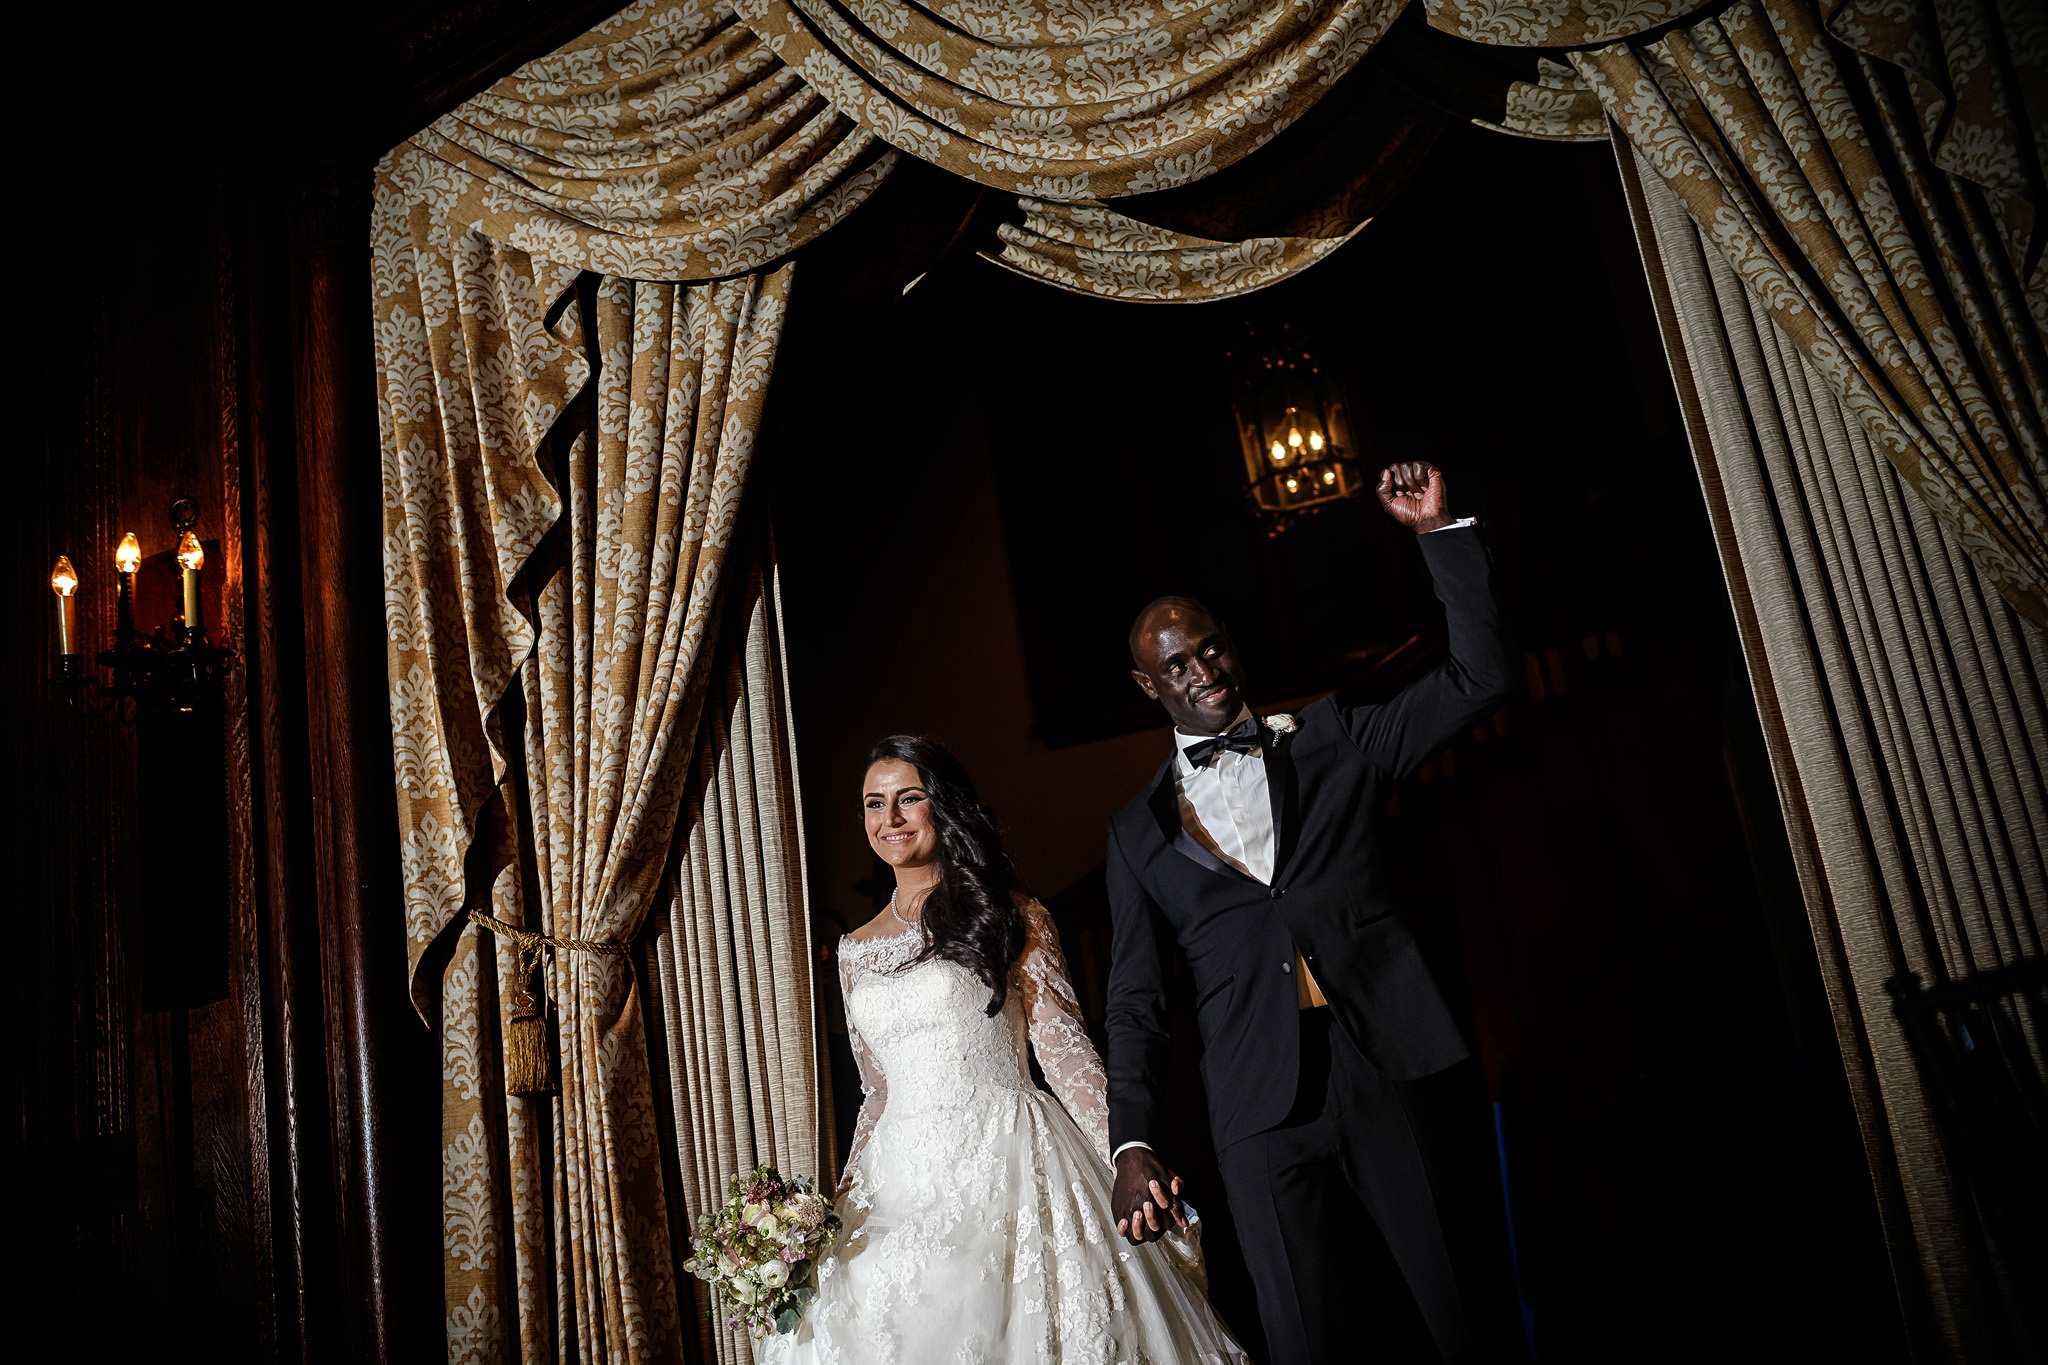 Bride and bridegroom arrive at wedding reception California